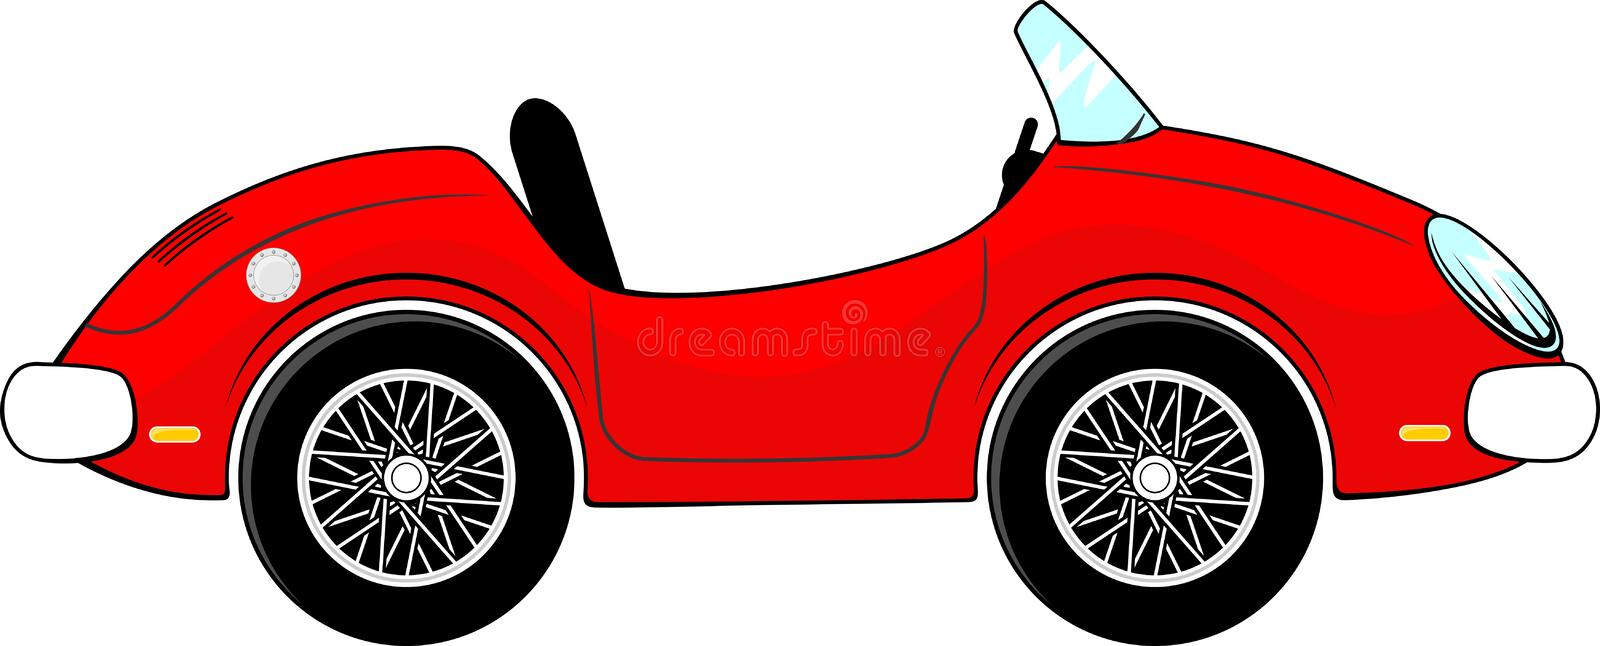 Red convertible car cartoon stock illustration